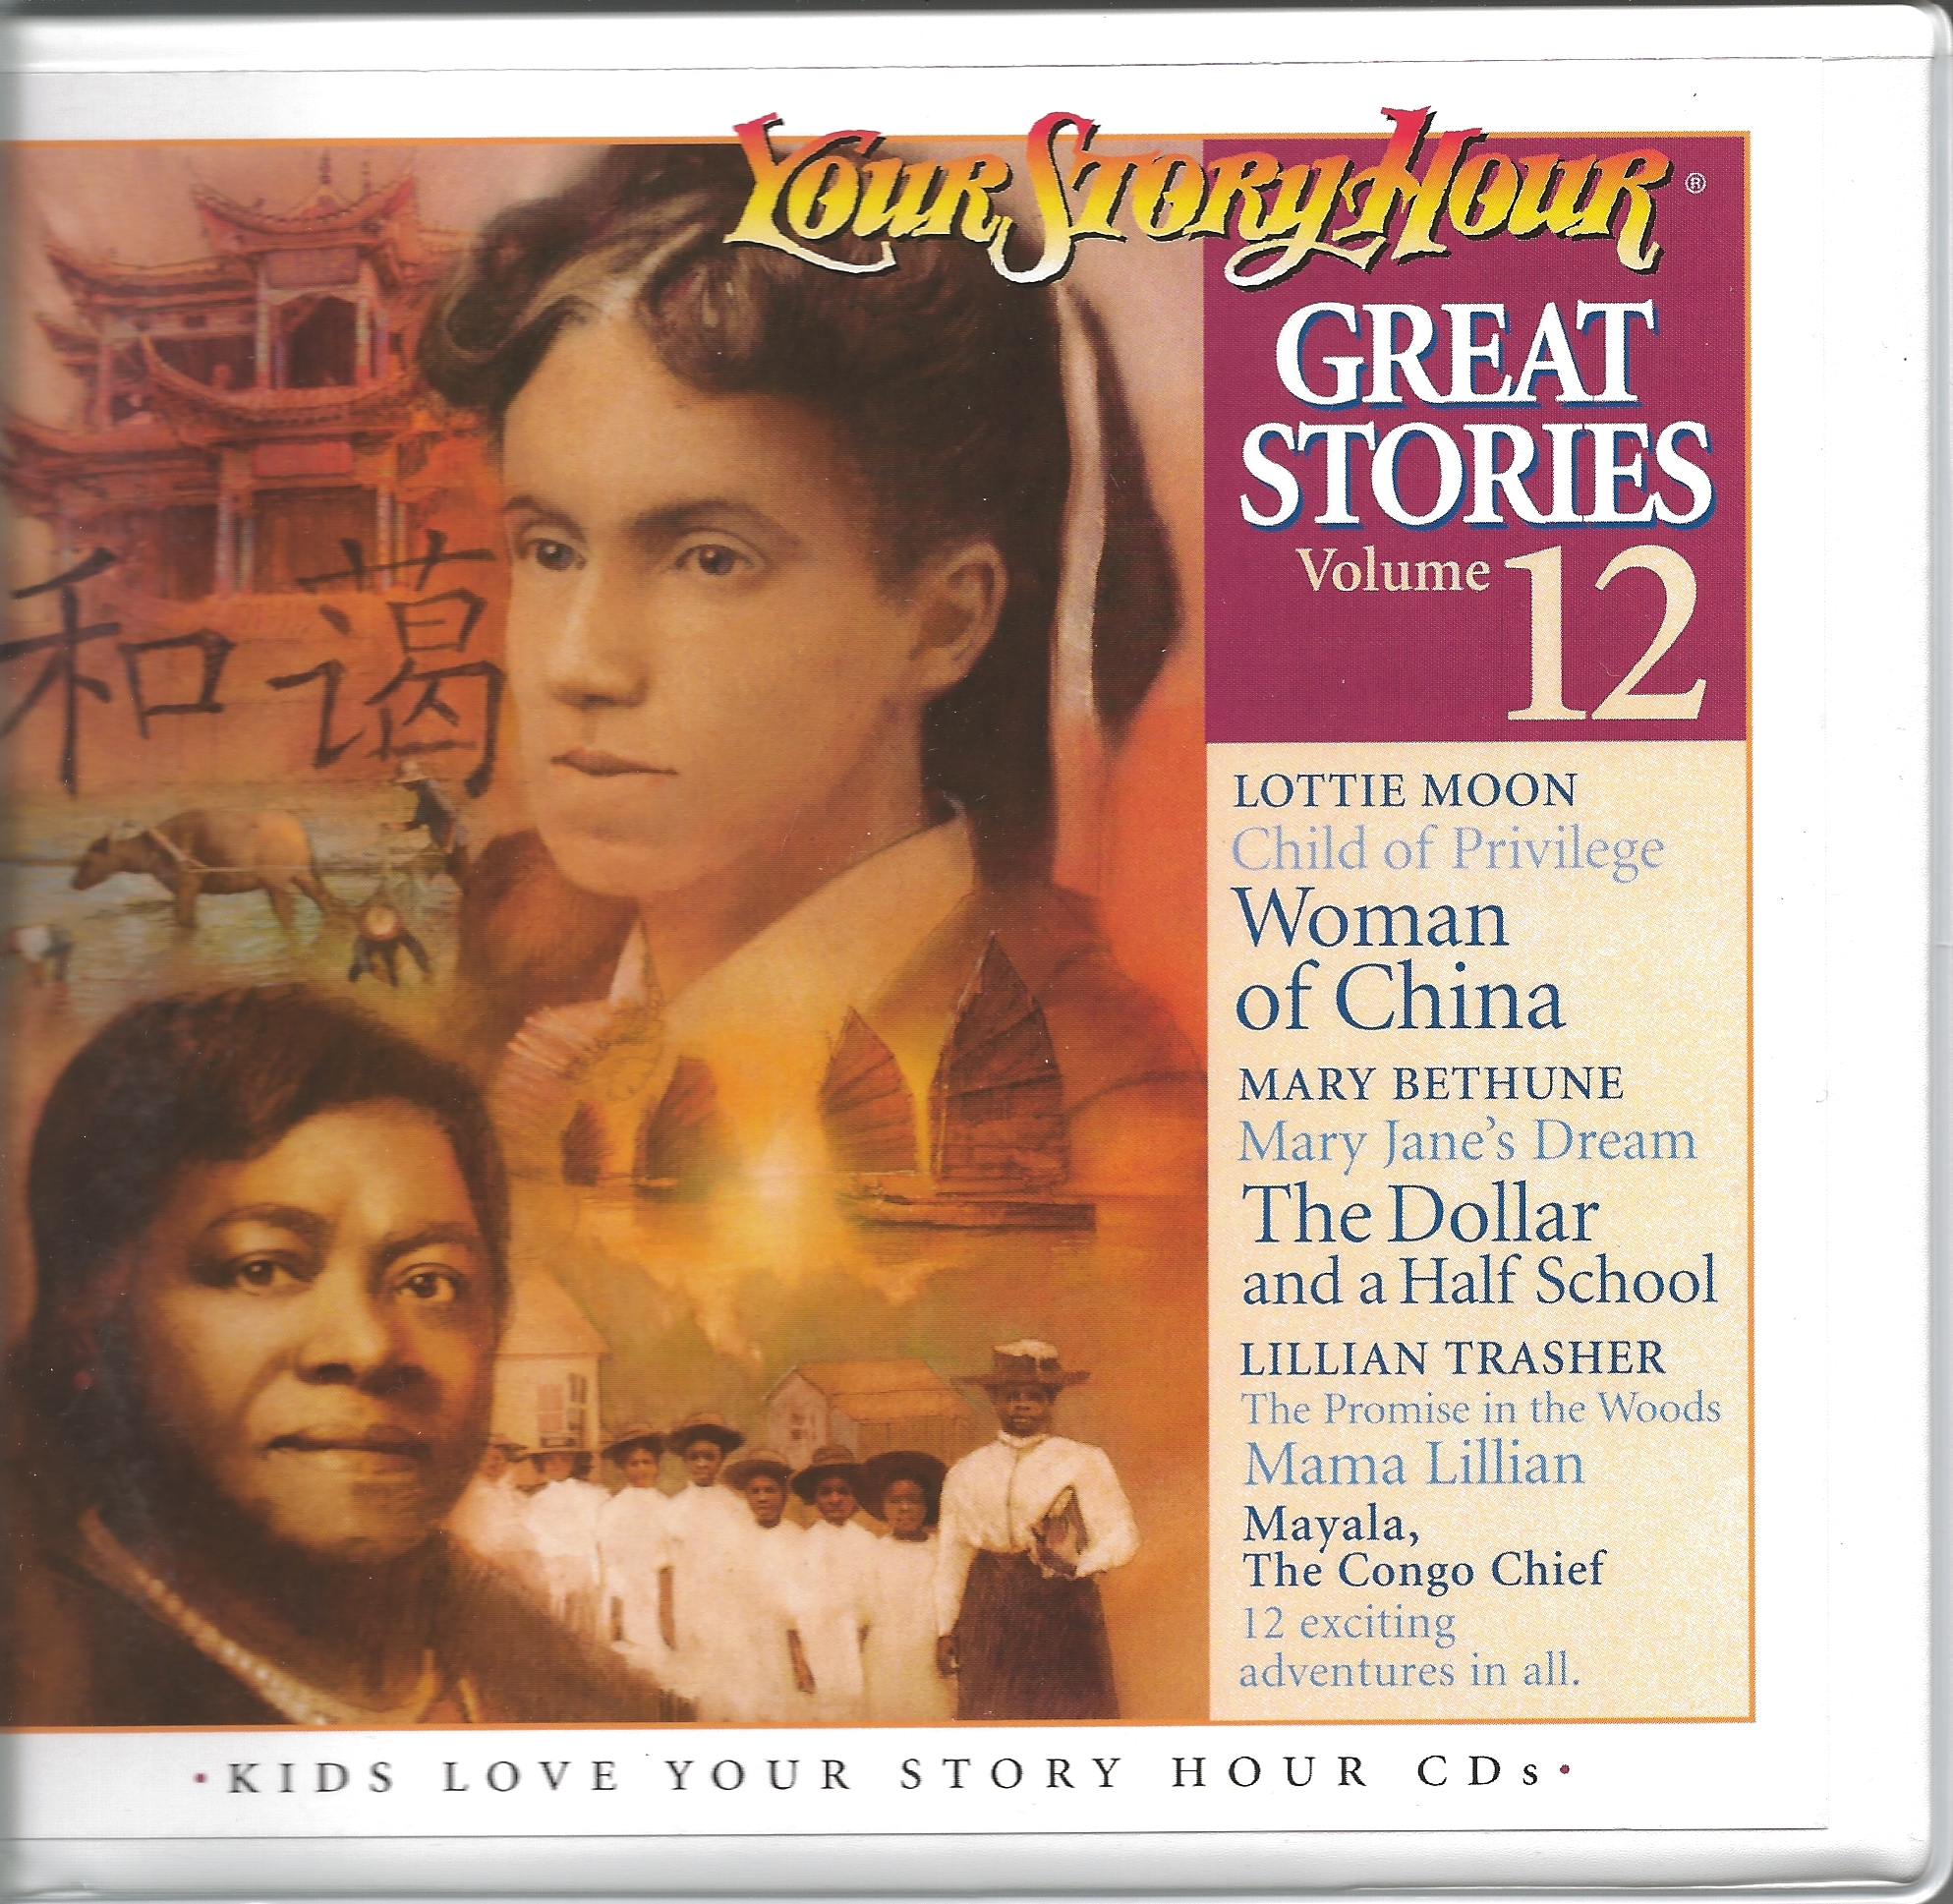 GREAT STORIES VOLUME 12 CD ALBUM Your Story Hour